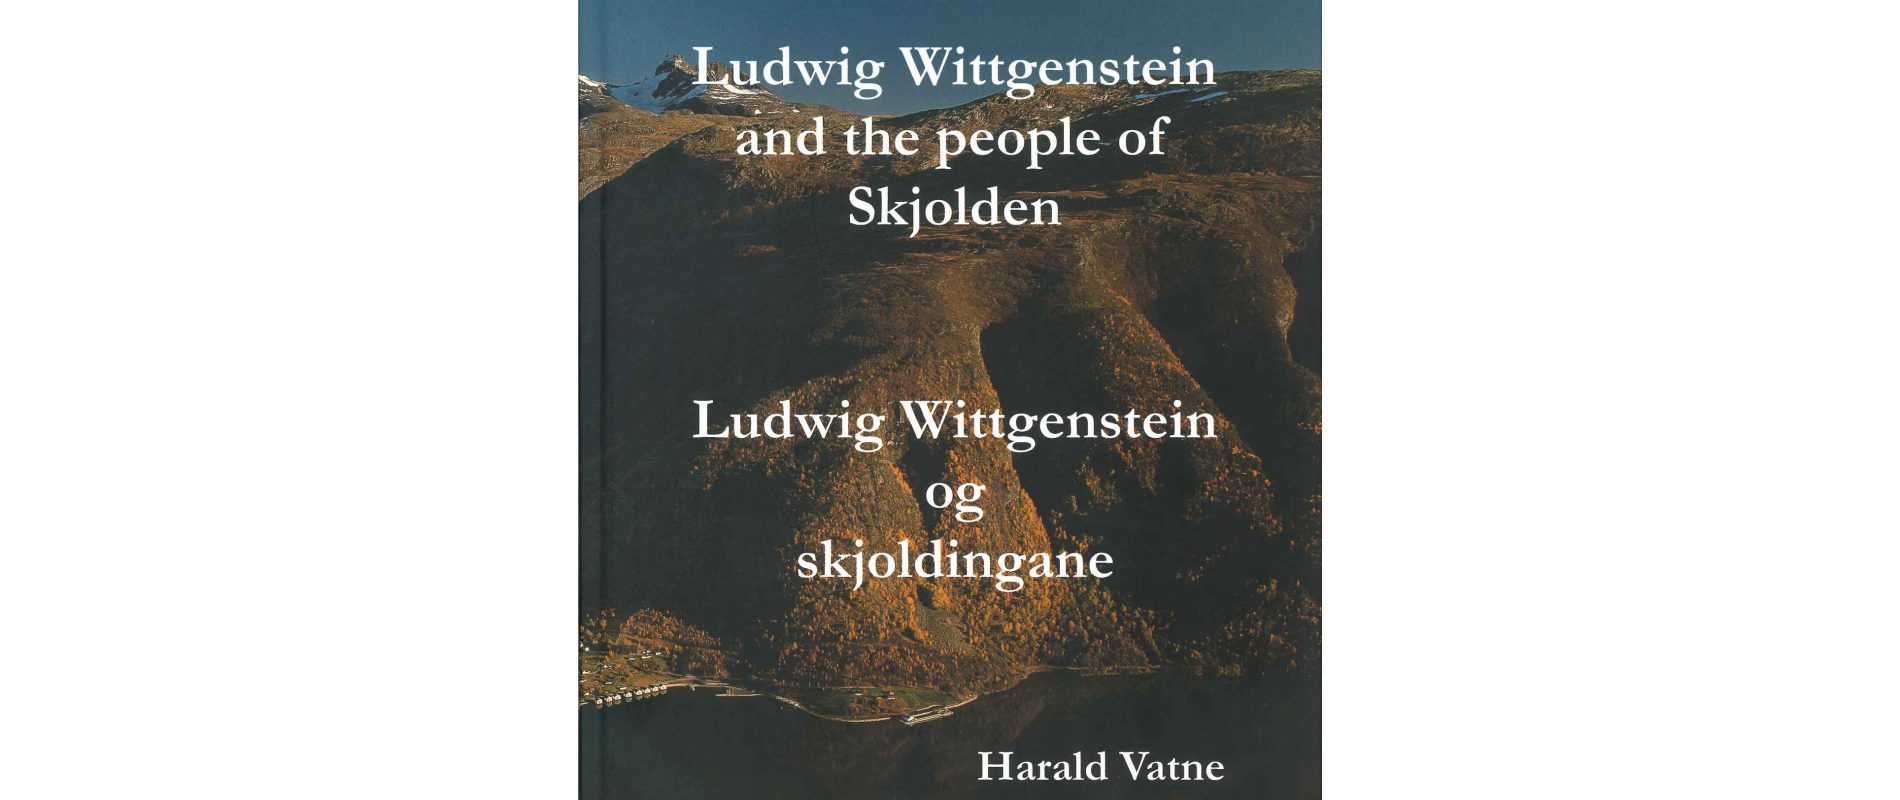 Book Cover for Ludwig Wittgenstein and the People of Skjolden